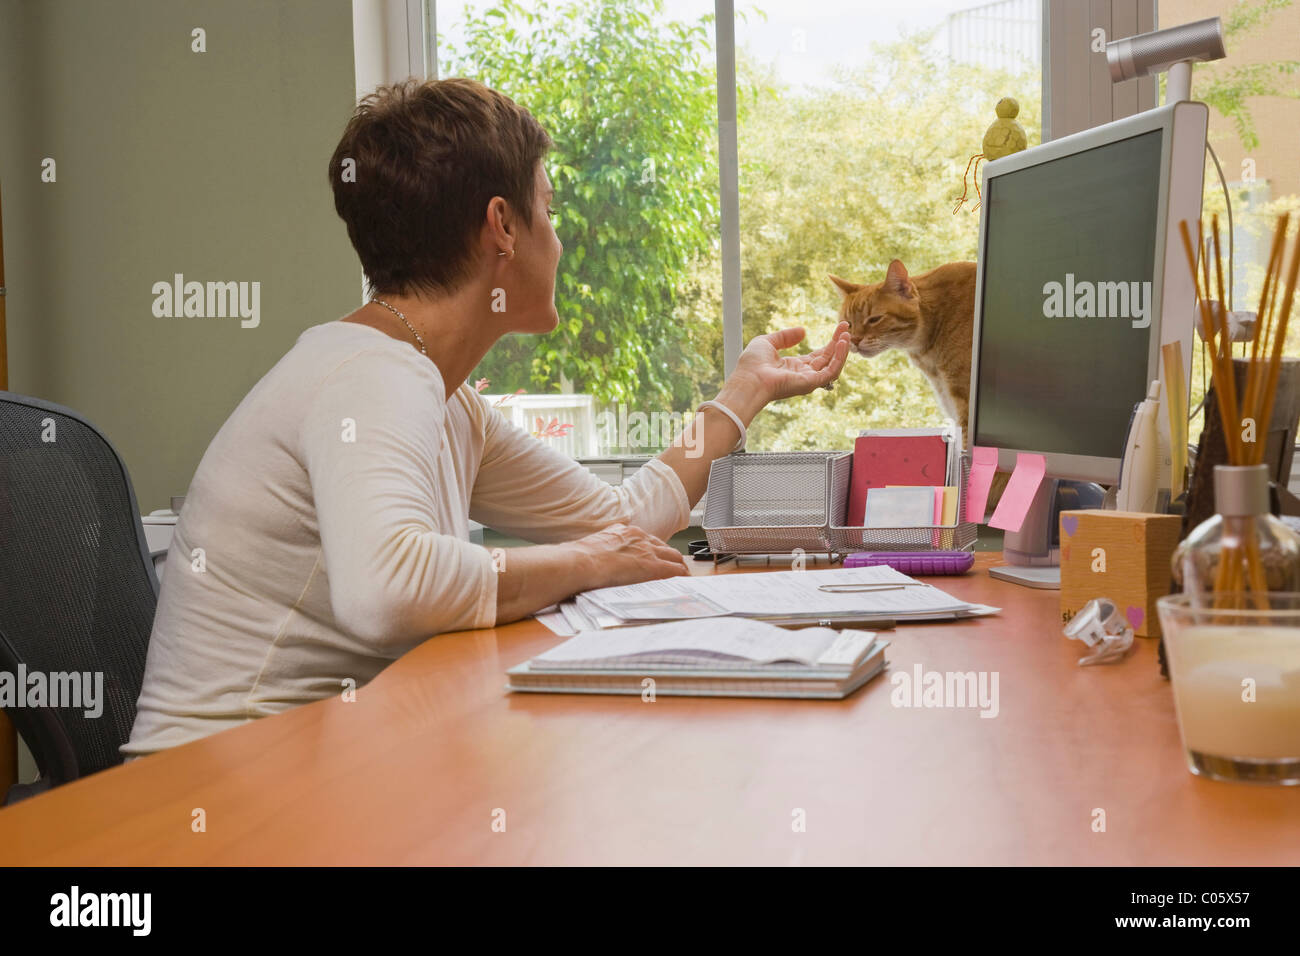 Woman at desk with cat in the house. - Stock Image